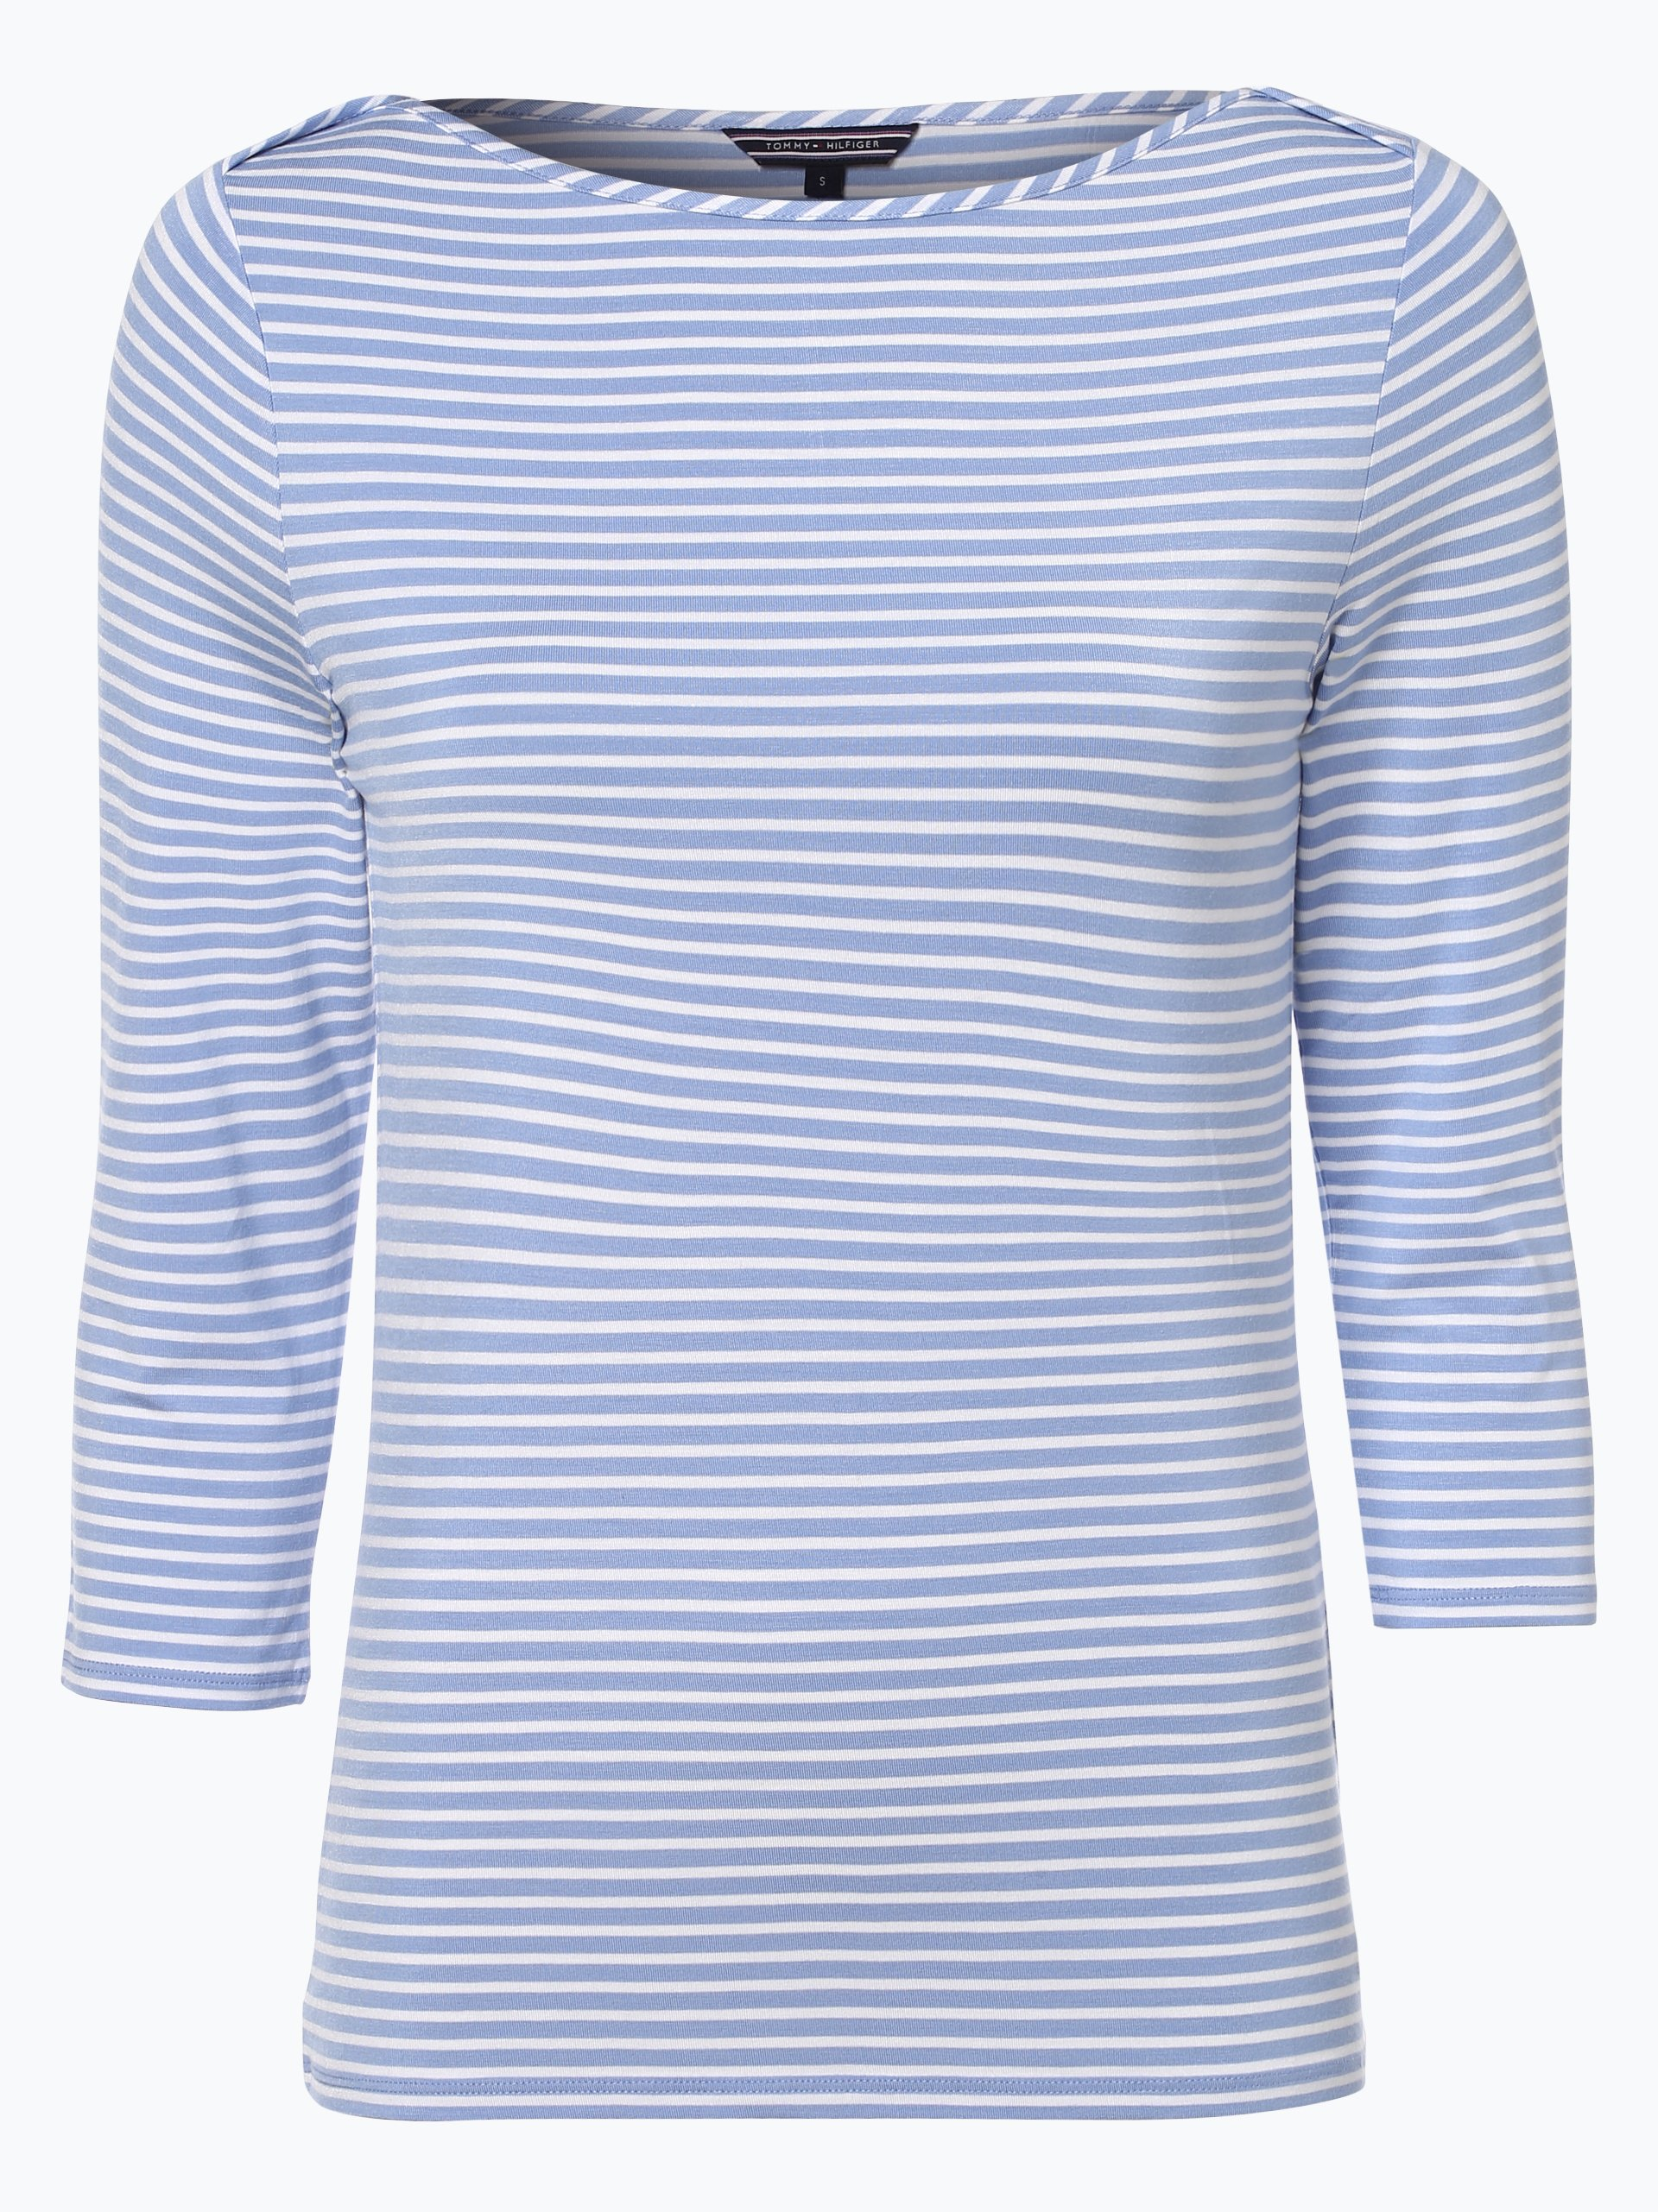 Tommy Hilfiger Damen Shirt - New Jada